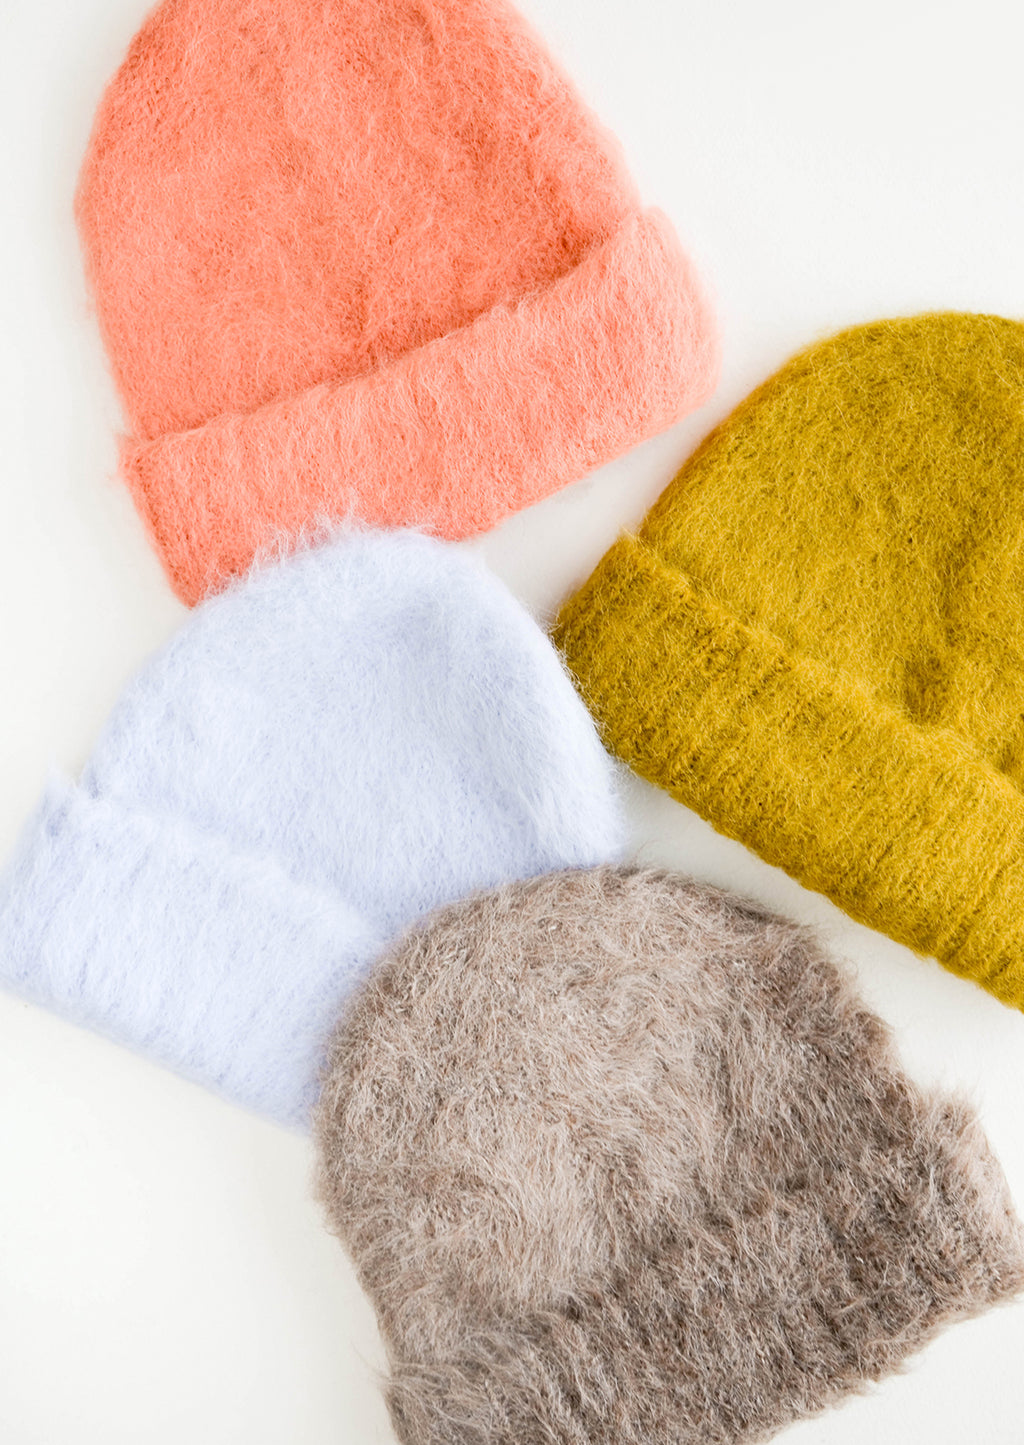 2: Four beanies in coral pink, pale blue, pale brown, and yellow-green laid out.